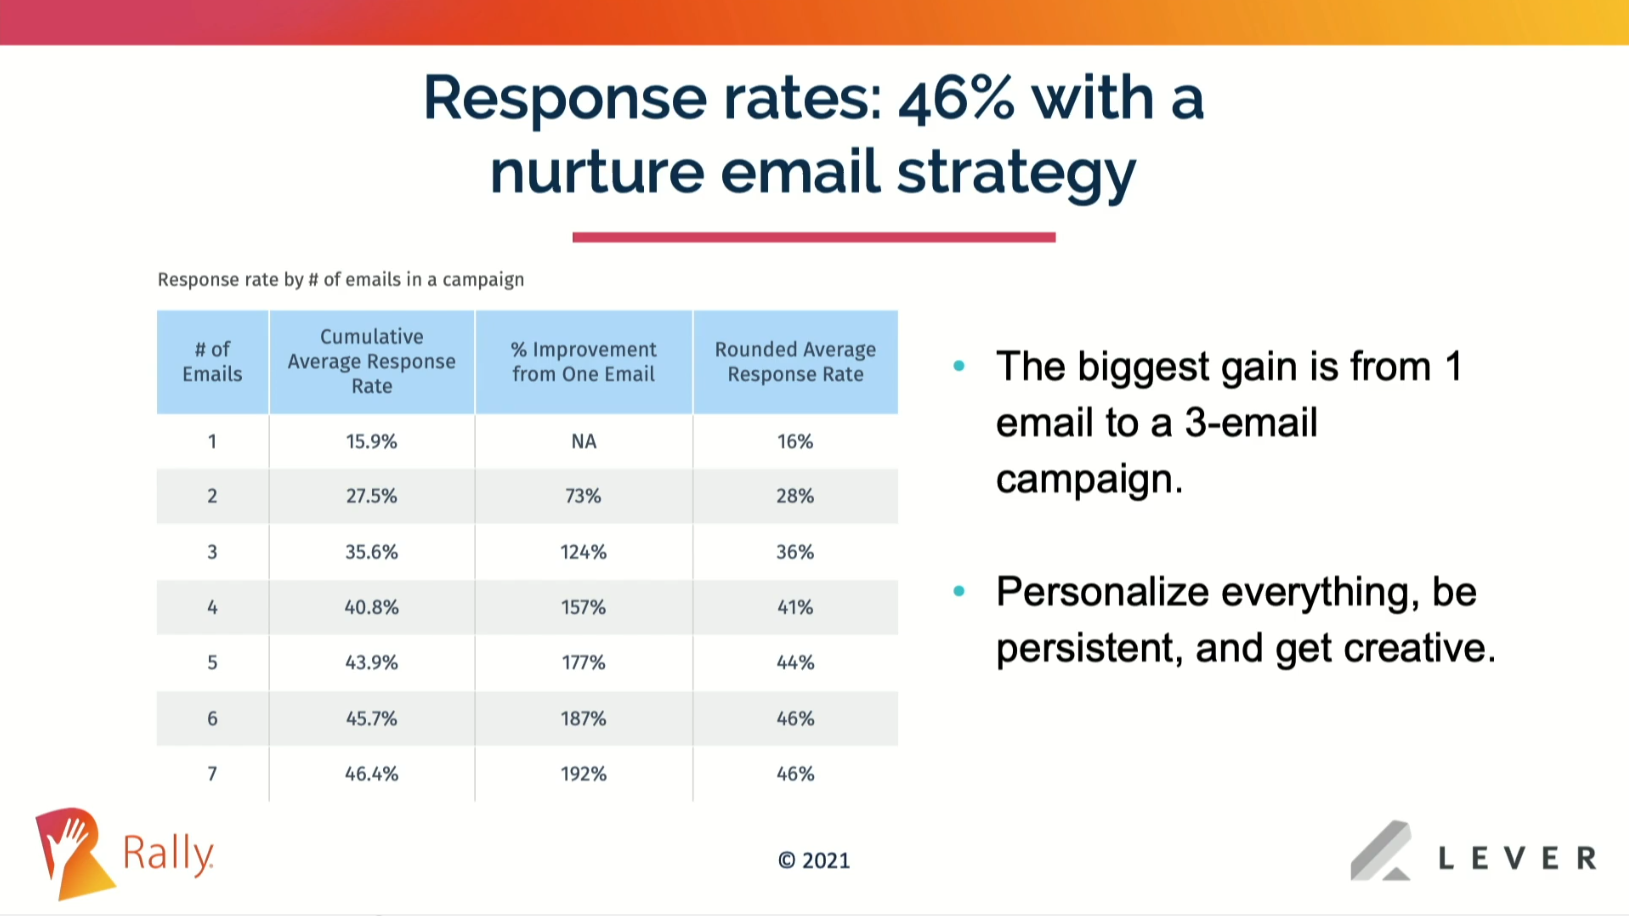 Candidate nurture email strategy increases response rate